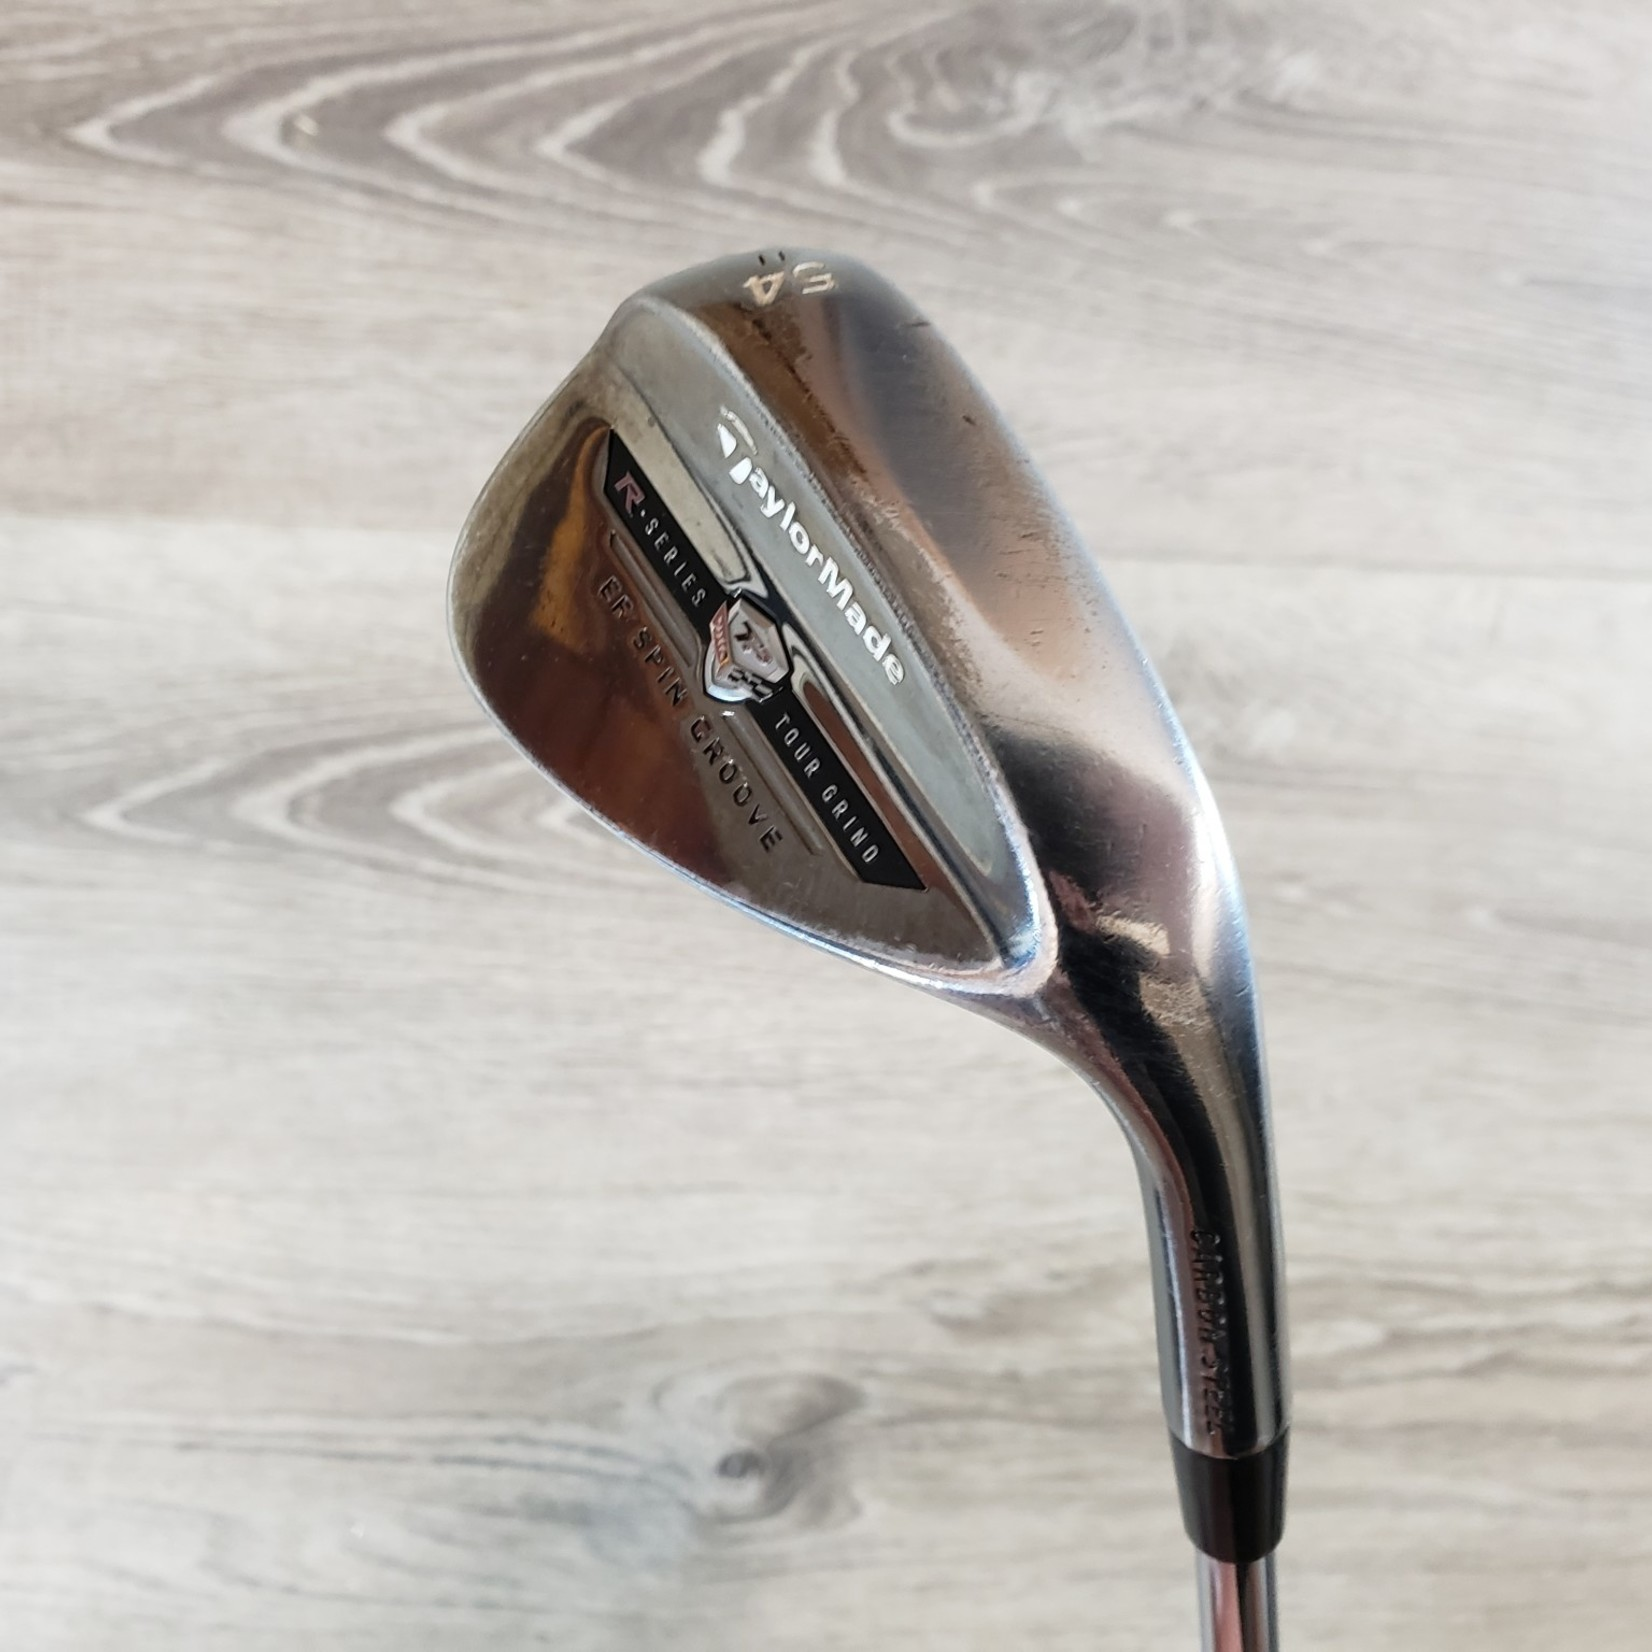 TaylorMade (Demo) TaylorMade R-Series Tour Grind 54* 11 KBS Wedge (RH)